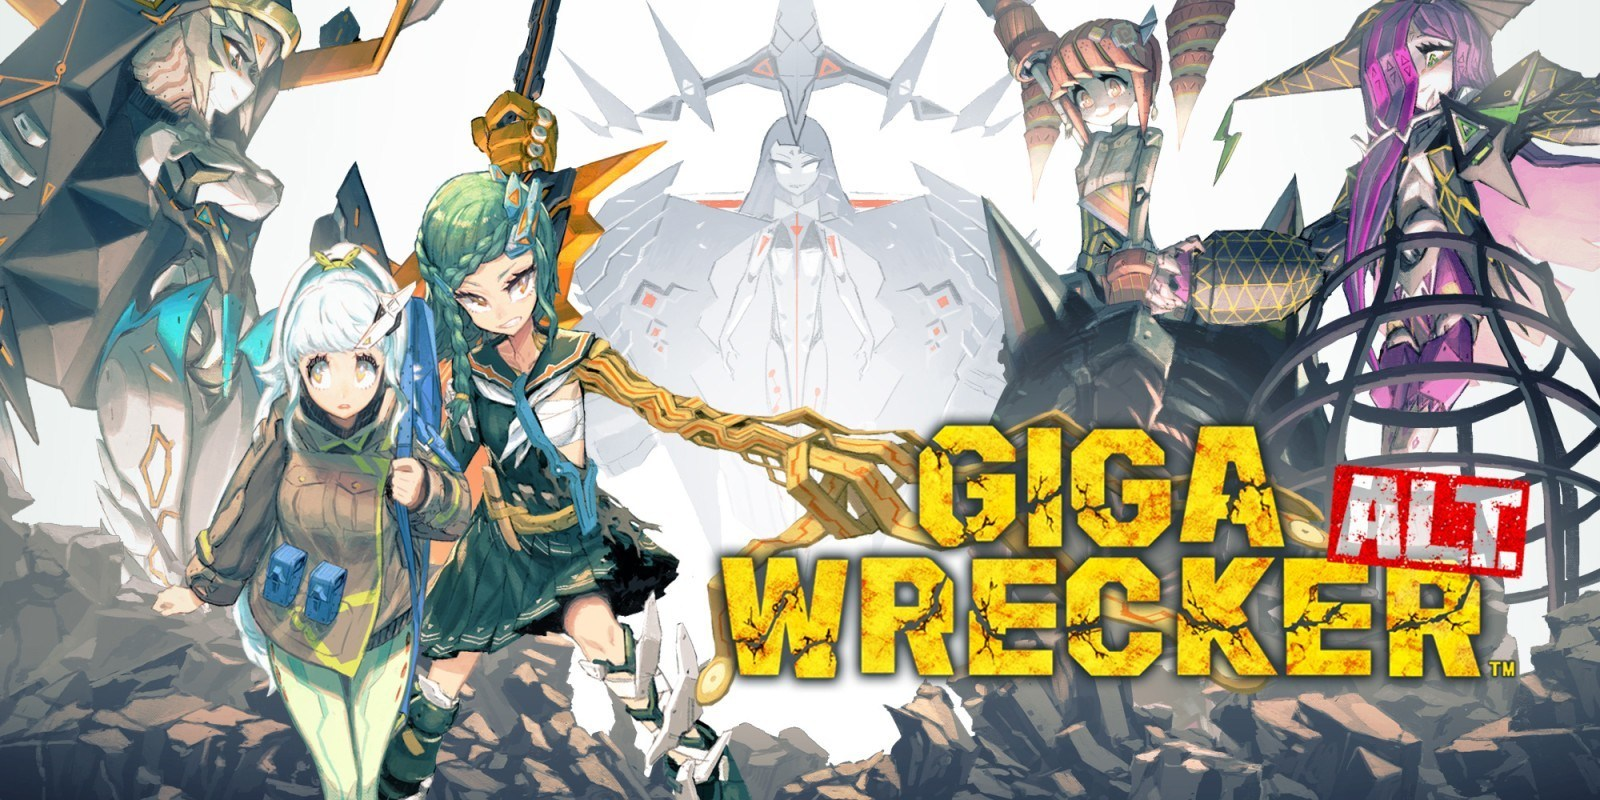 Giga Wrecker Alt. review – gotta smash 'em all